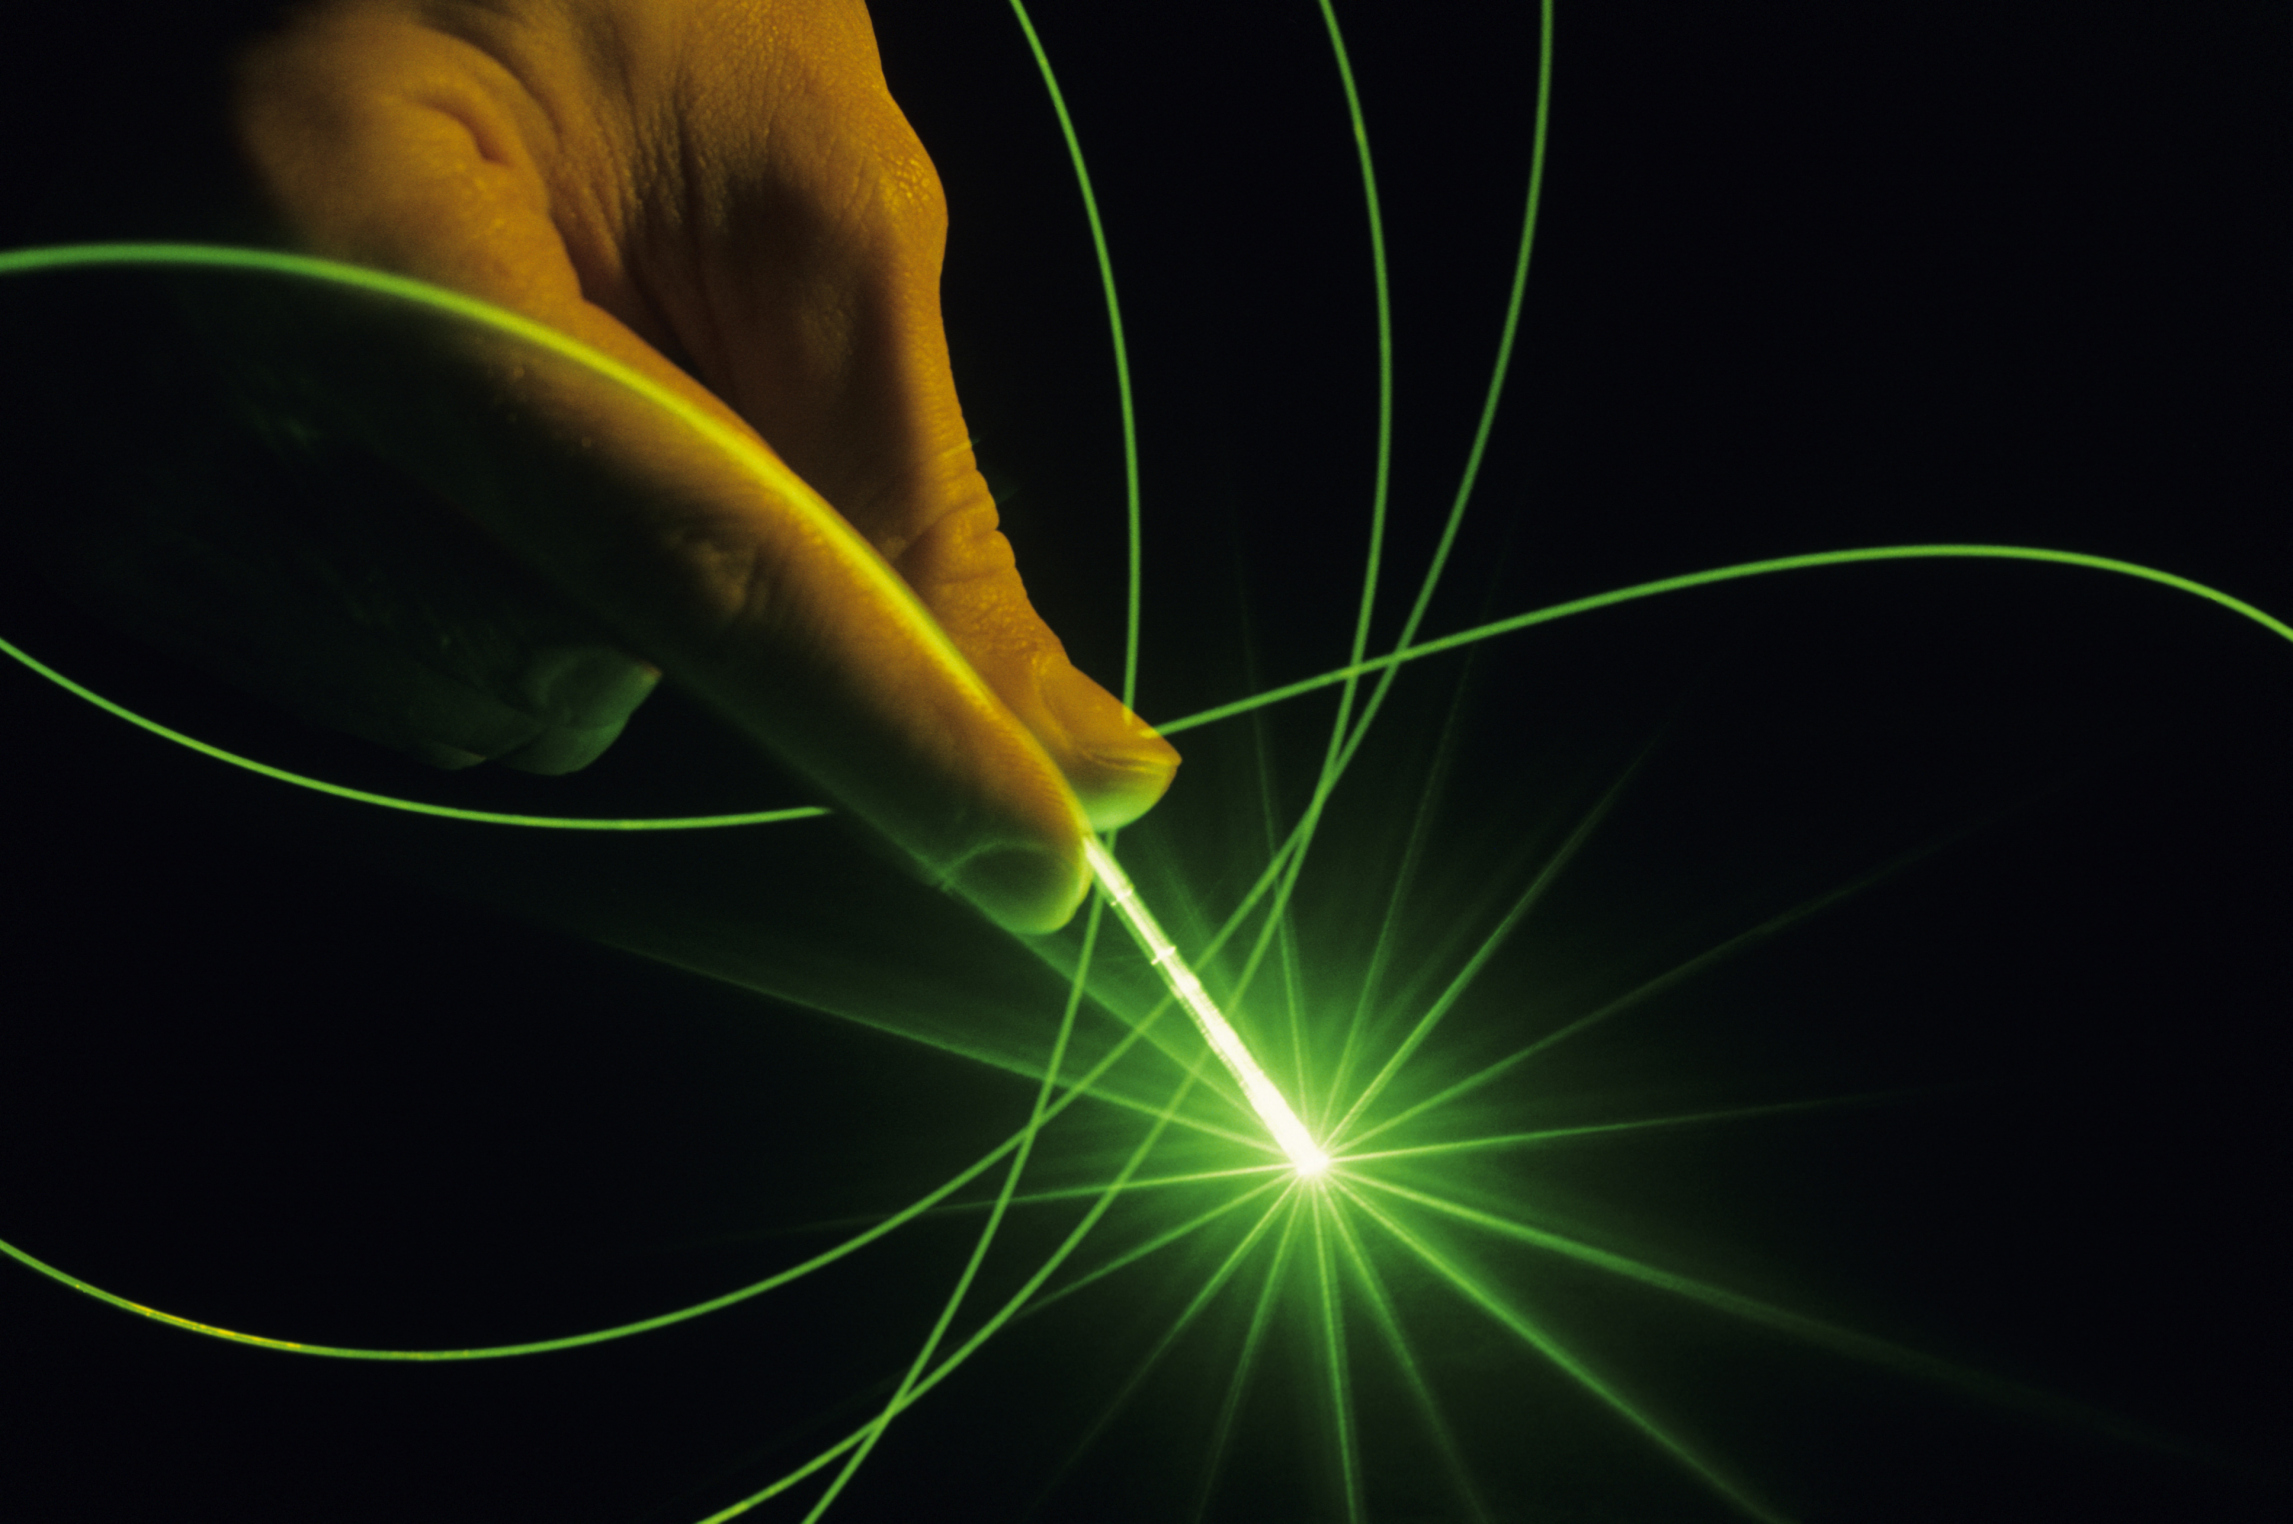 How Do Holographic Projectors Work?